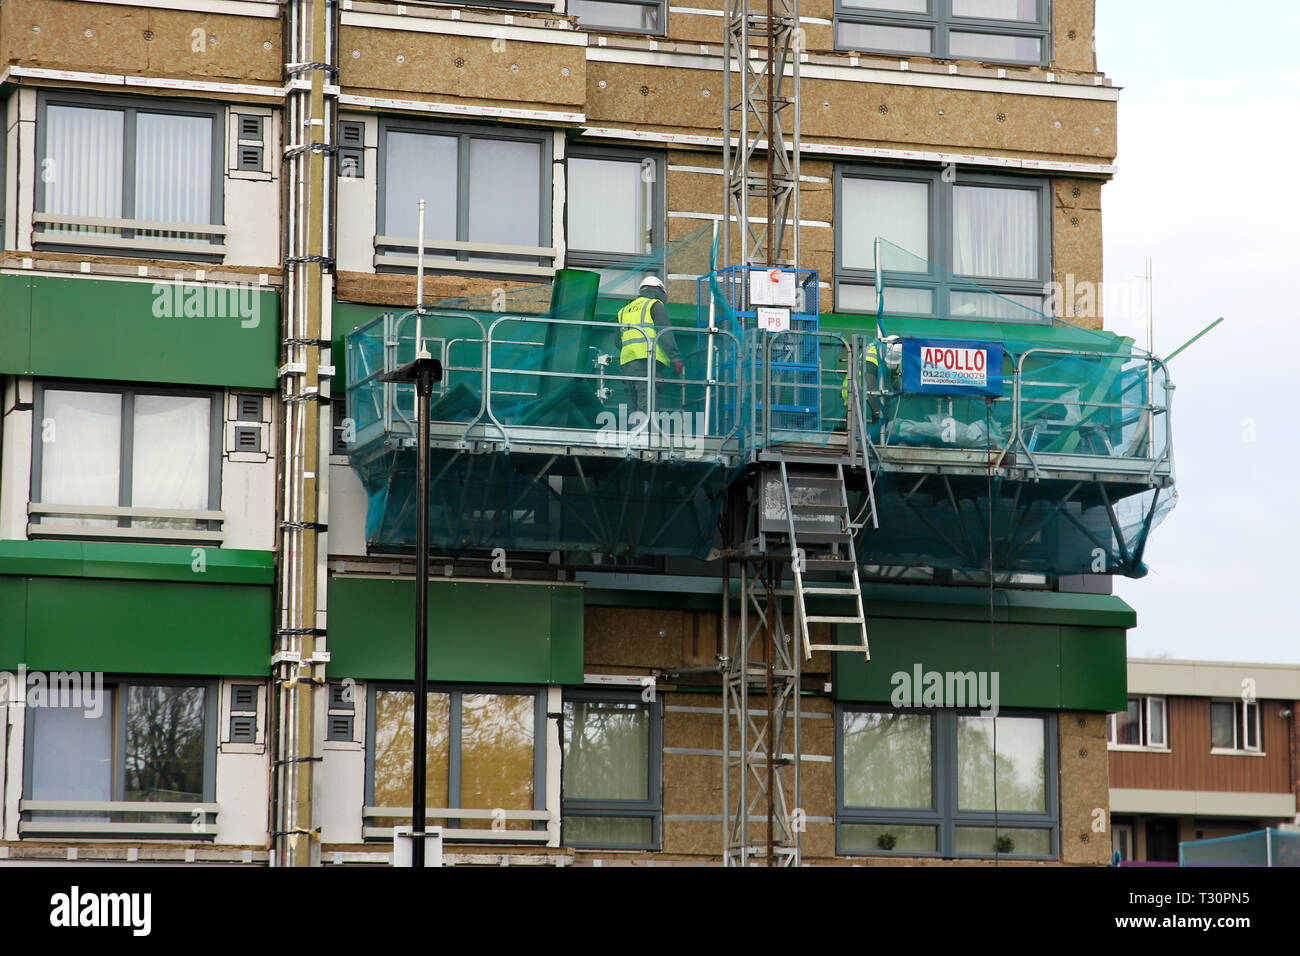 Sheffield, South Yorkshire, UK. 5th April 2019. Cladding on the Hanover Tower block in Sheffield is being replaced after failing an inspection in the wake of the Grenfell Tower fire. Credit: Alamy Live News. Stock Photo